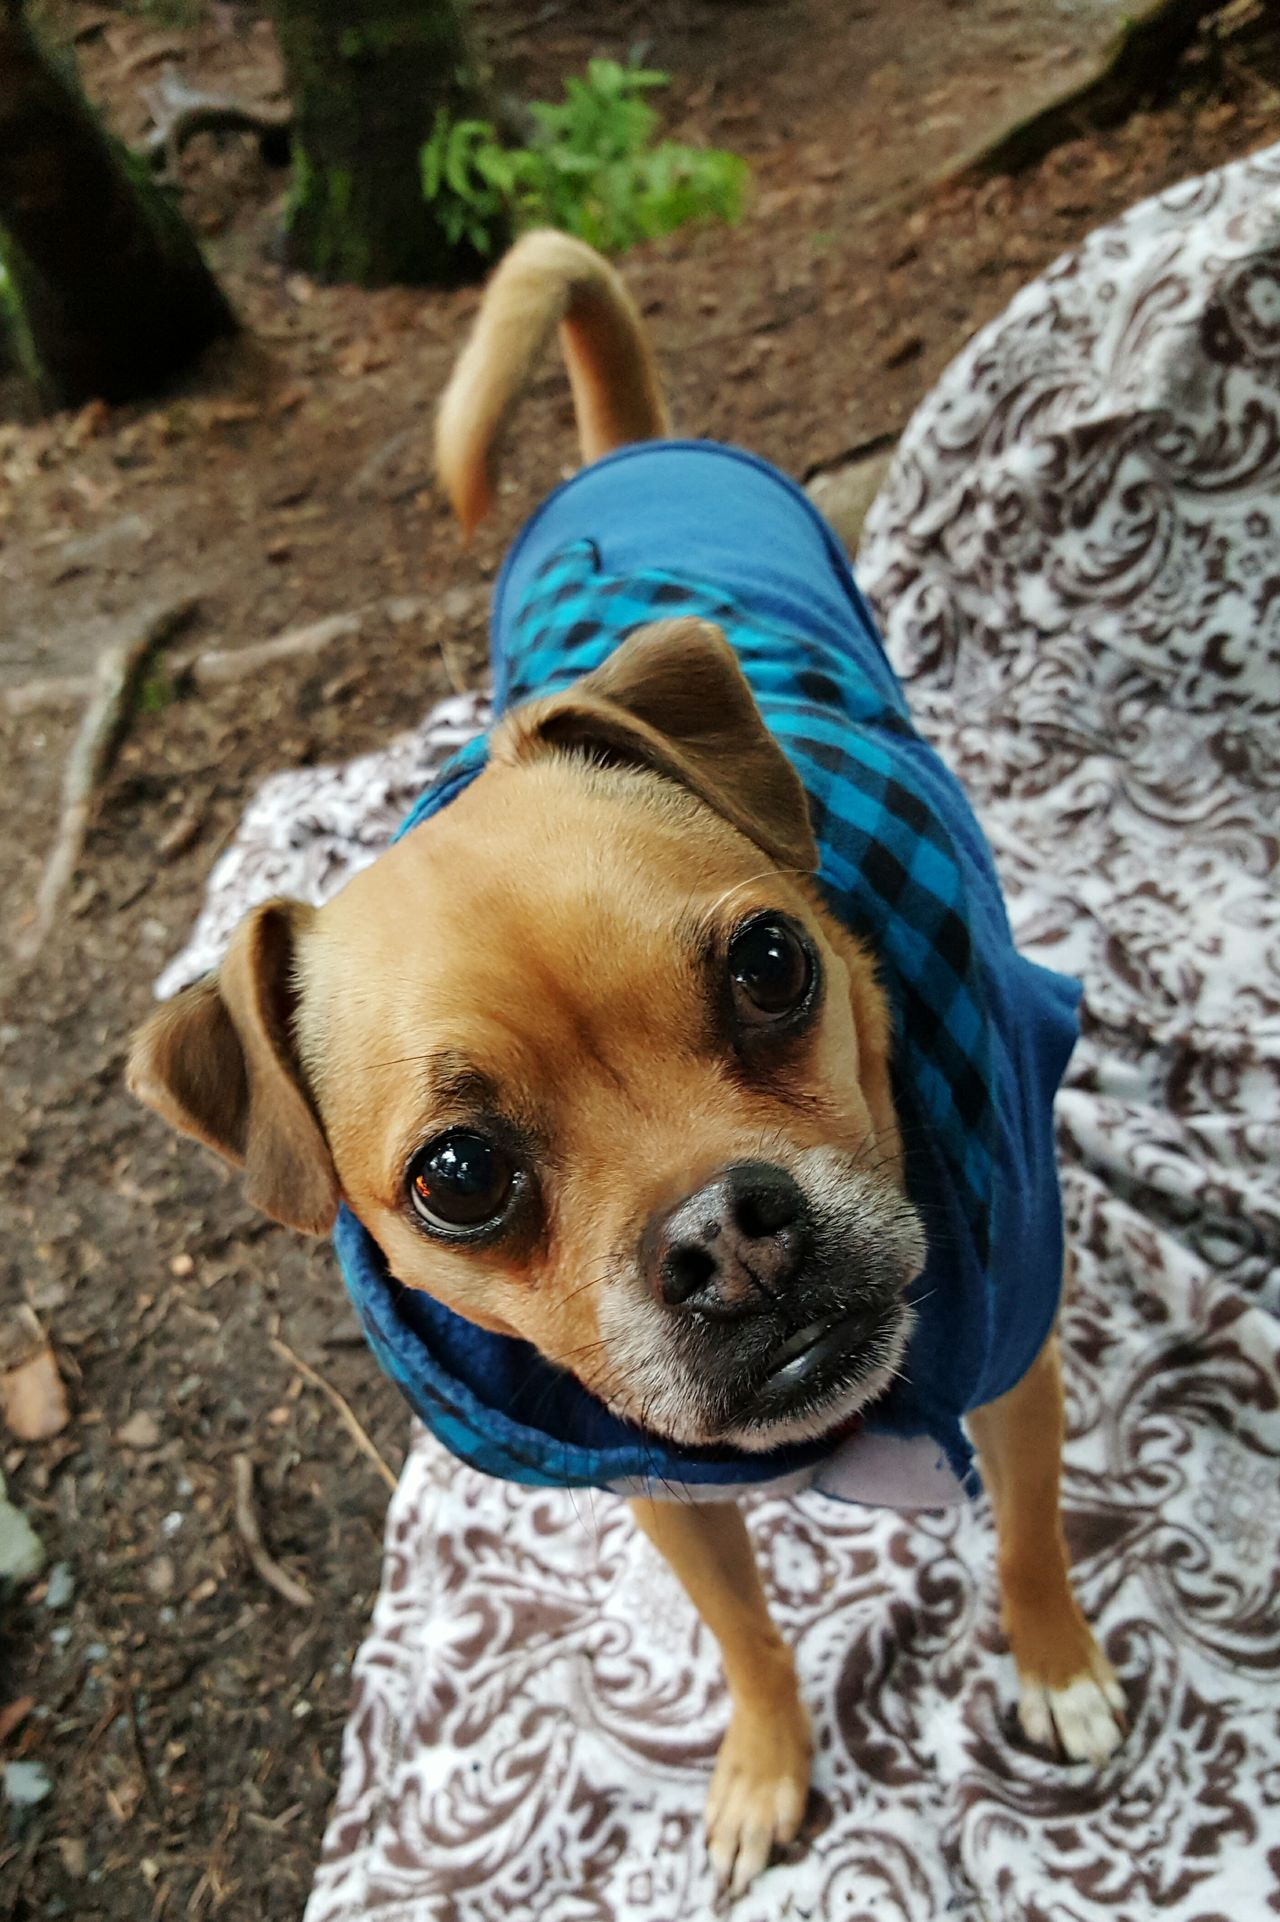 Camping Dog Animal Themes Domestic Animals Pets Chihuahua Pug Mix Chug Furry Friends Furbaby Nature Outdoors Adventure Alaska